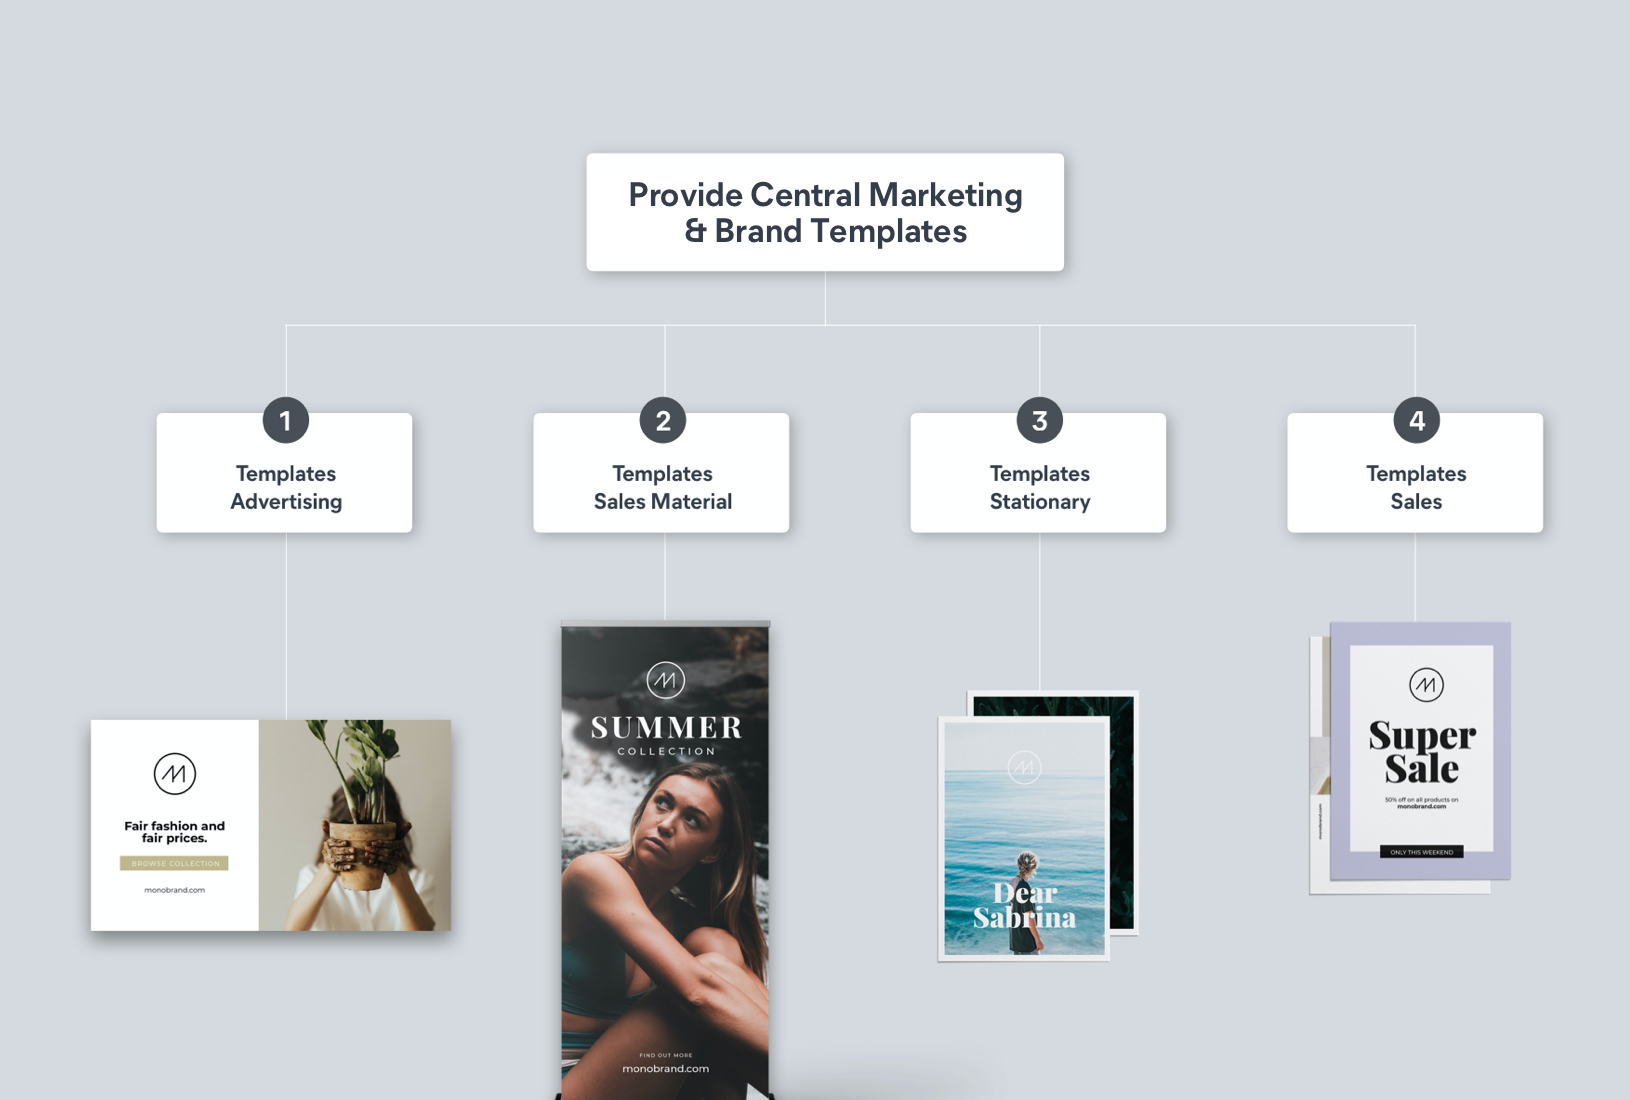 Marketing and Brand Templates